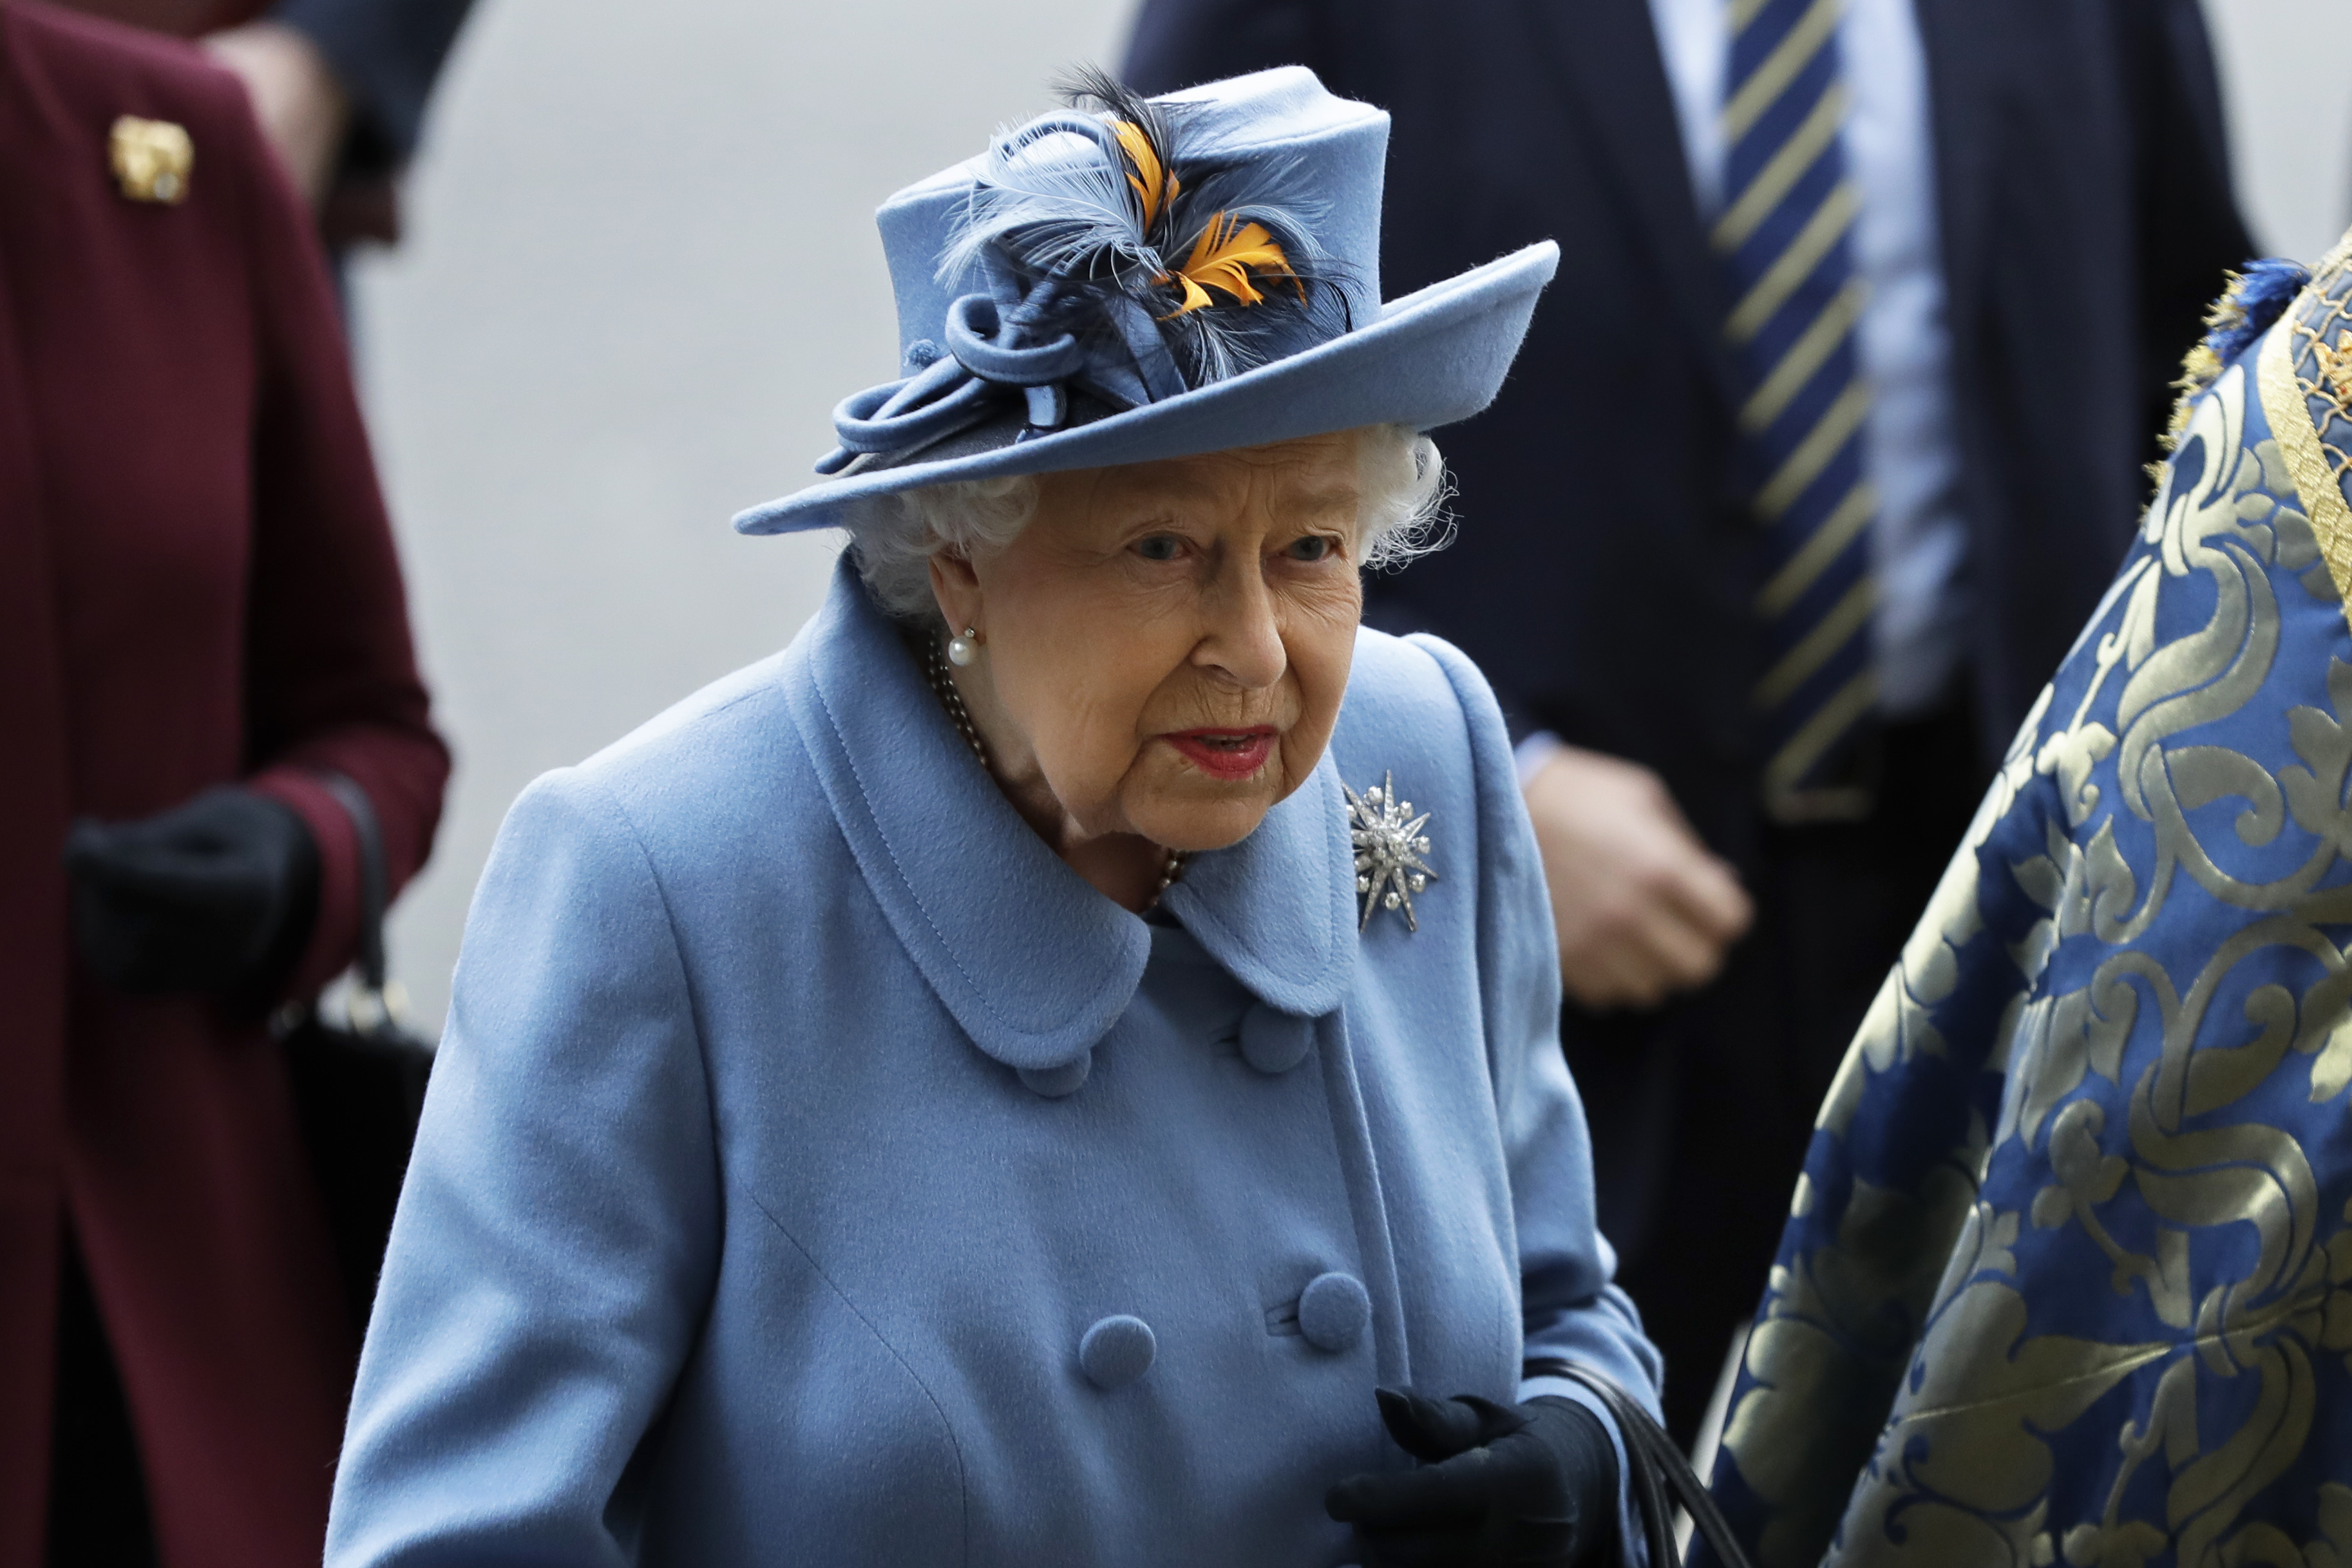 Britain's Queen Elizabeth II arrives to attend the annual Commonwealth Day service at Westminster Abbey in London, on March 9, 2020.